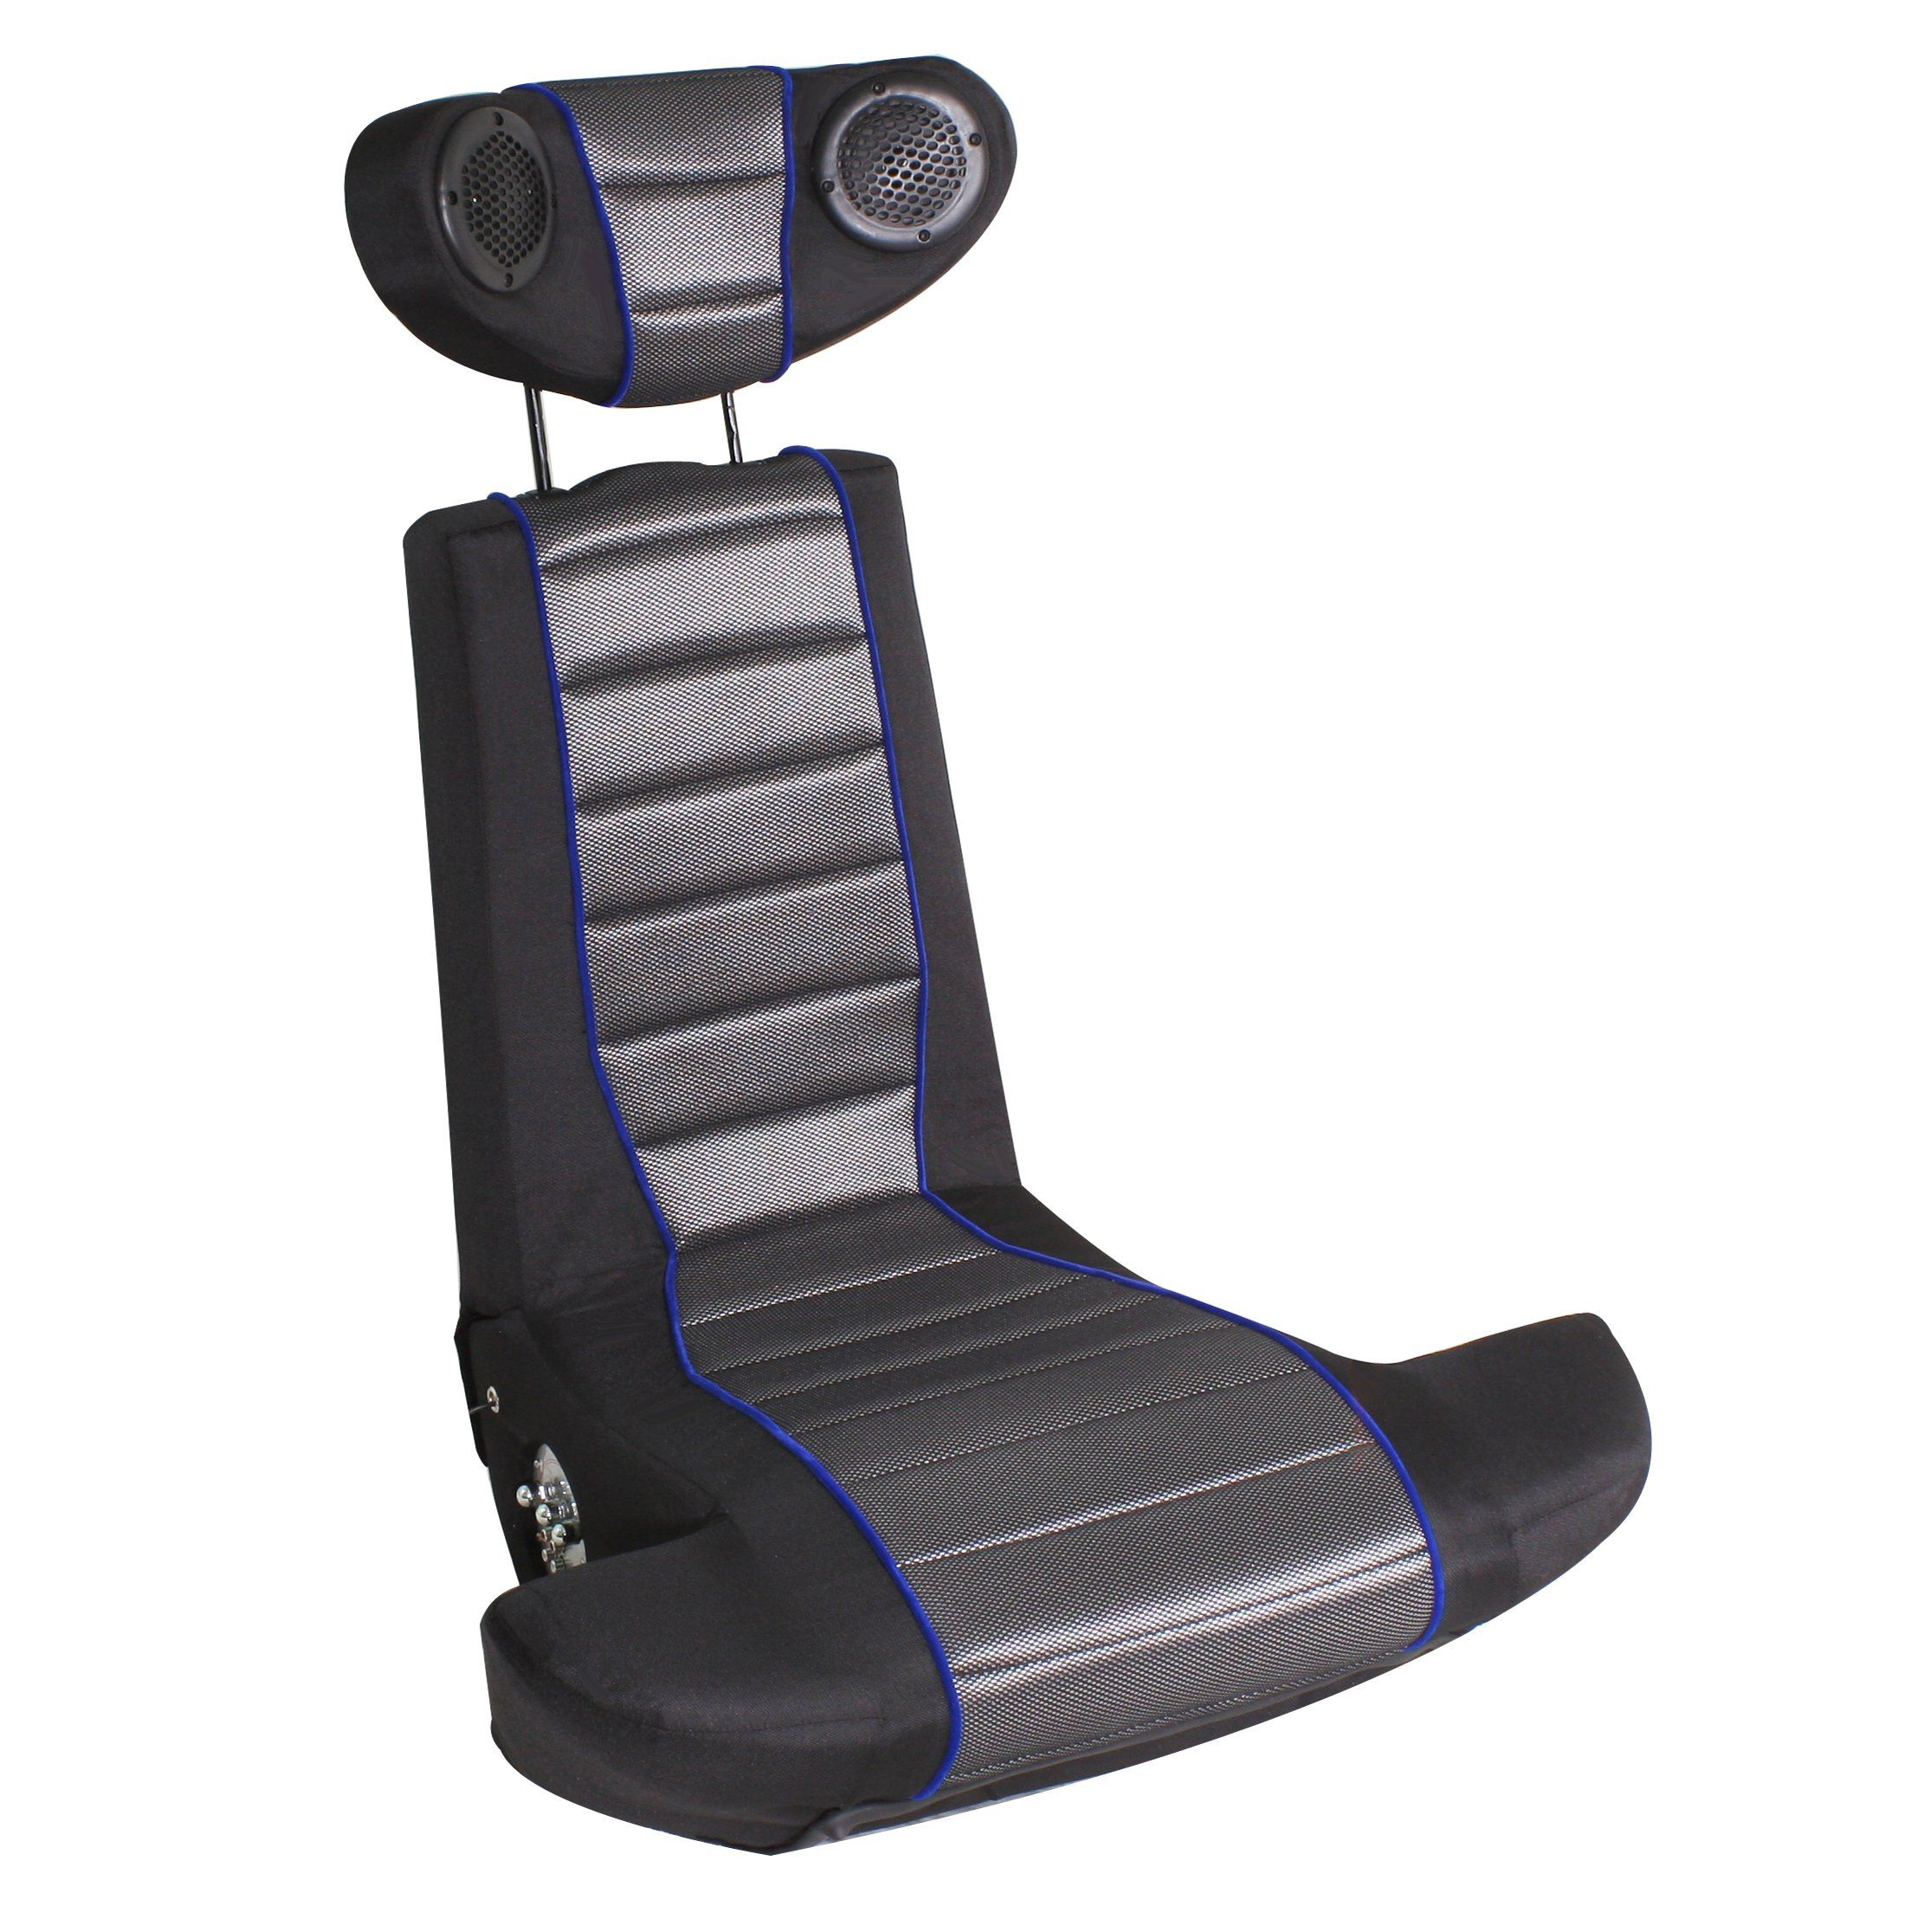 Video Game Chairs Amazon Boomchair Game Chair Black Video Game Chairs